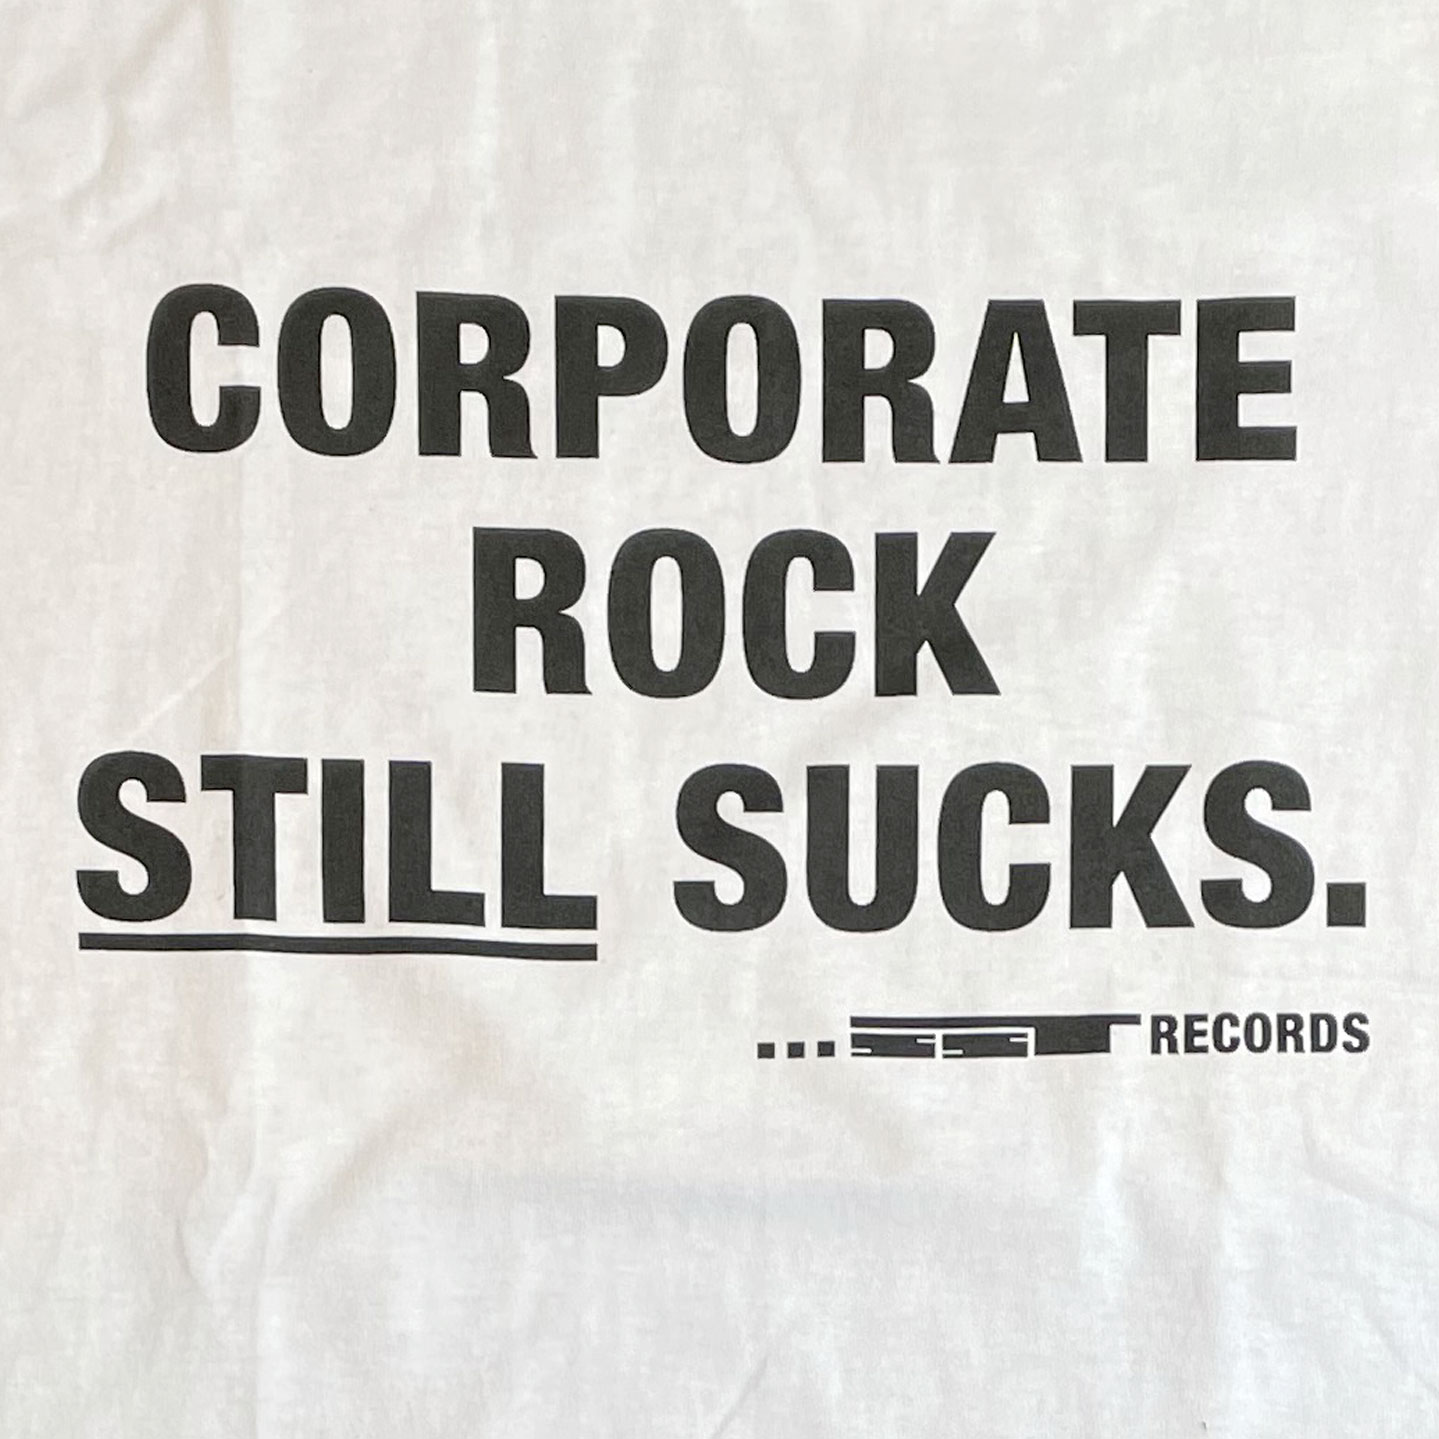 SST RECORDS Tシャツ CORPORATE ROCK